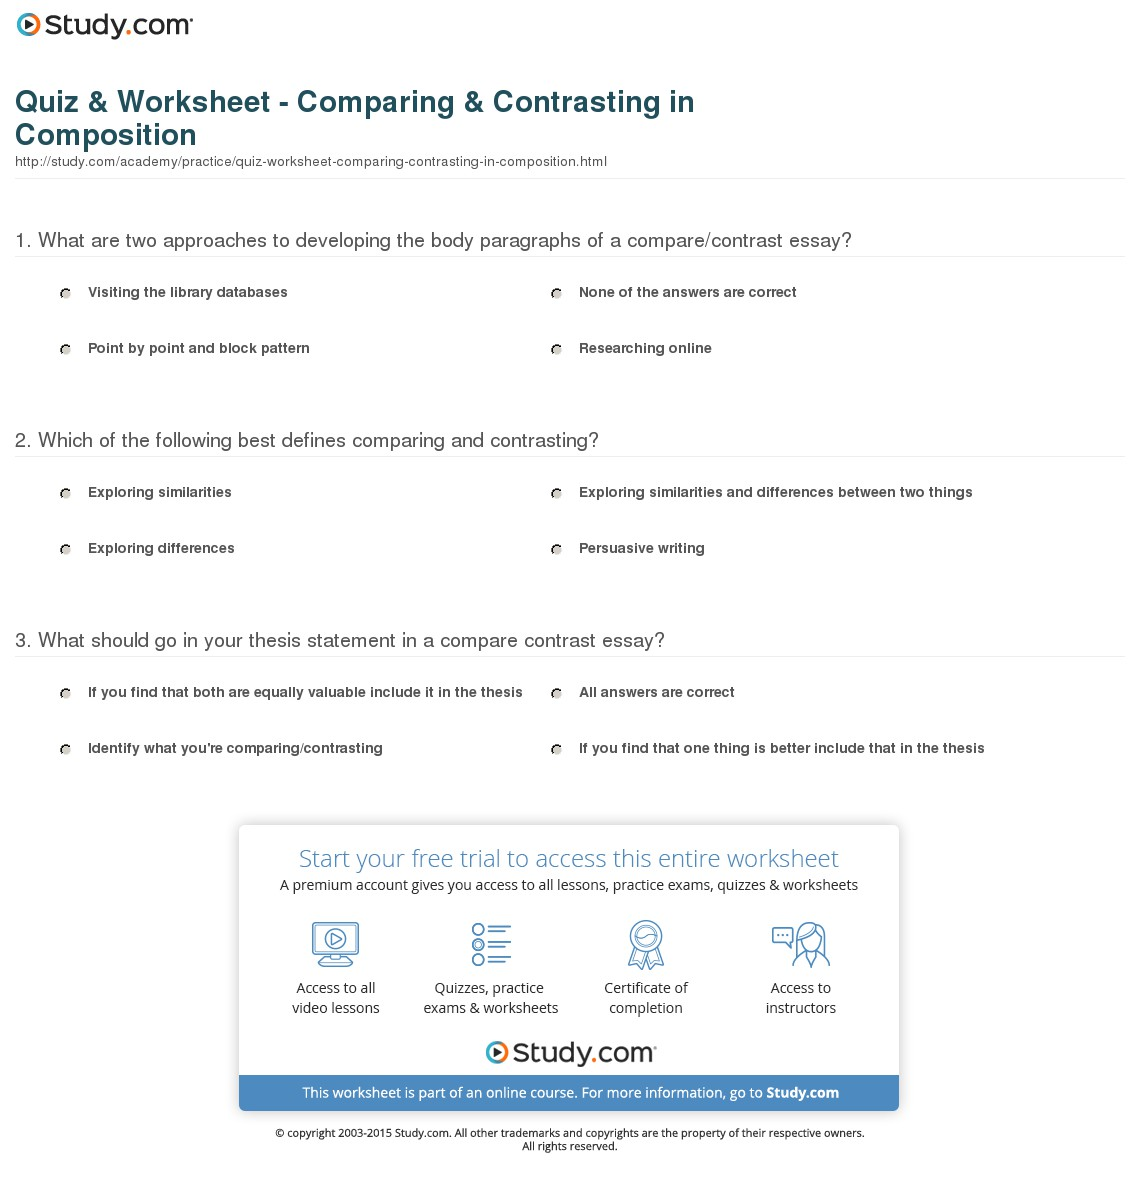 016 Quiz Worksheet Comparinging In Composition Essay Example Comparison And Awful Contrast Rubric Compare Template Word Full